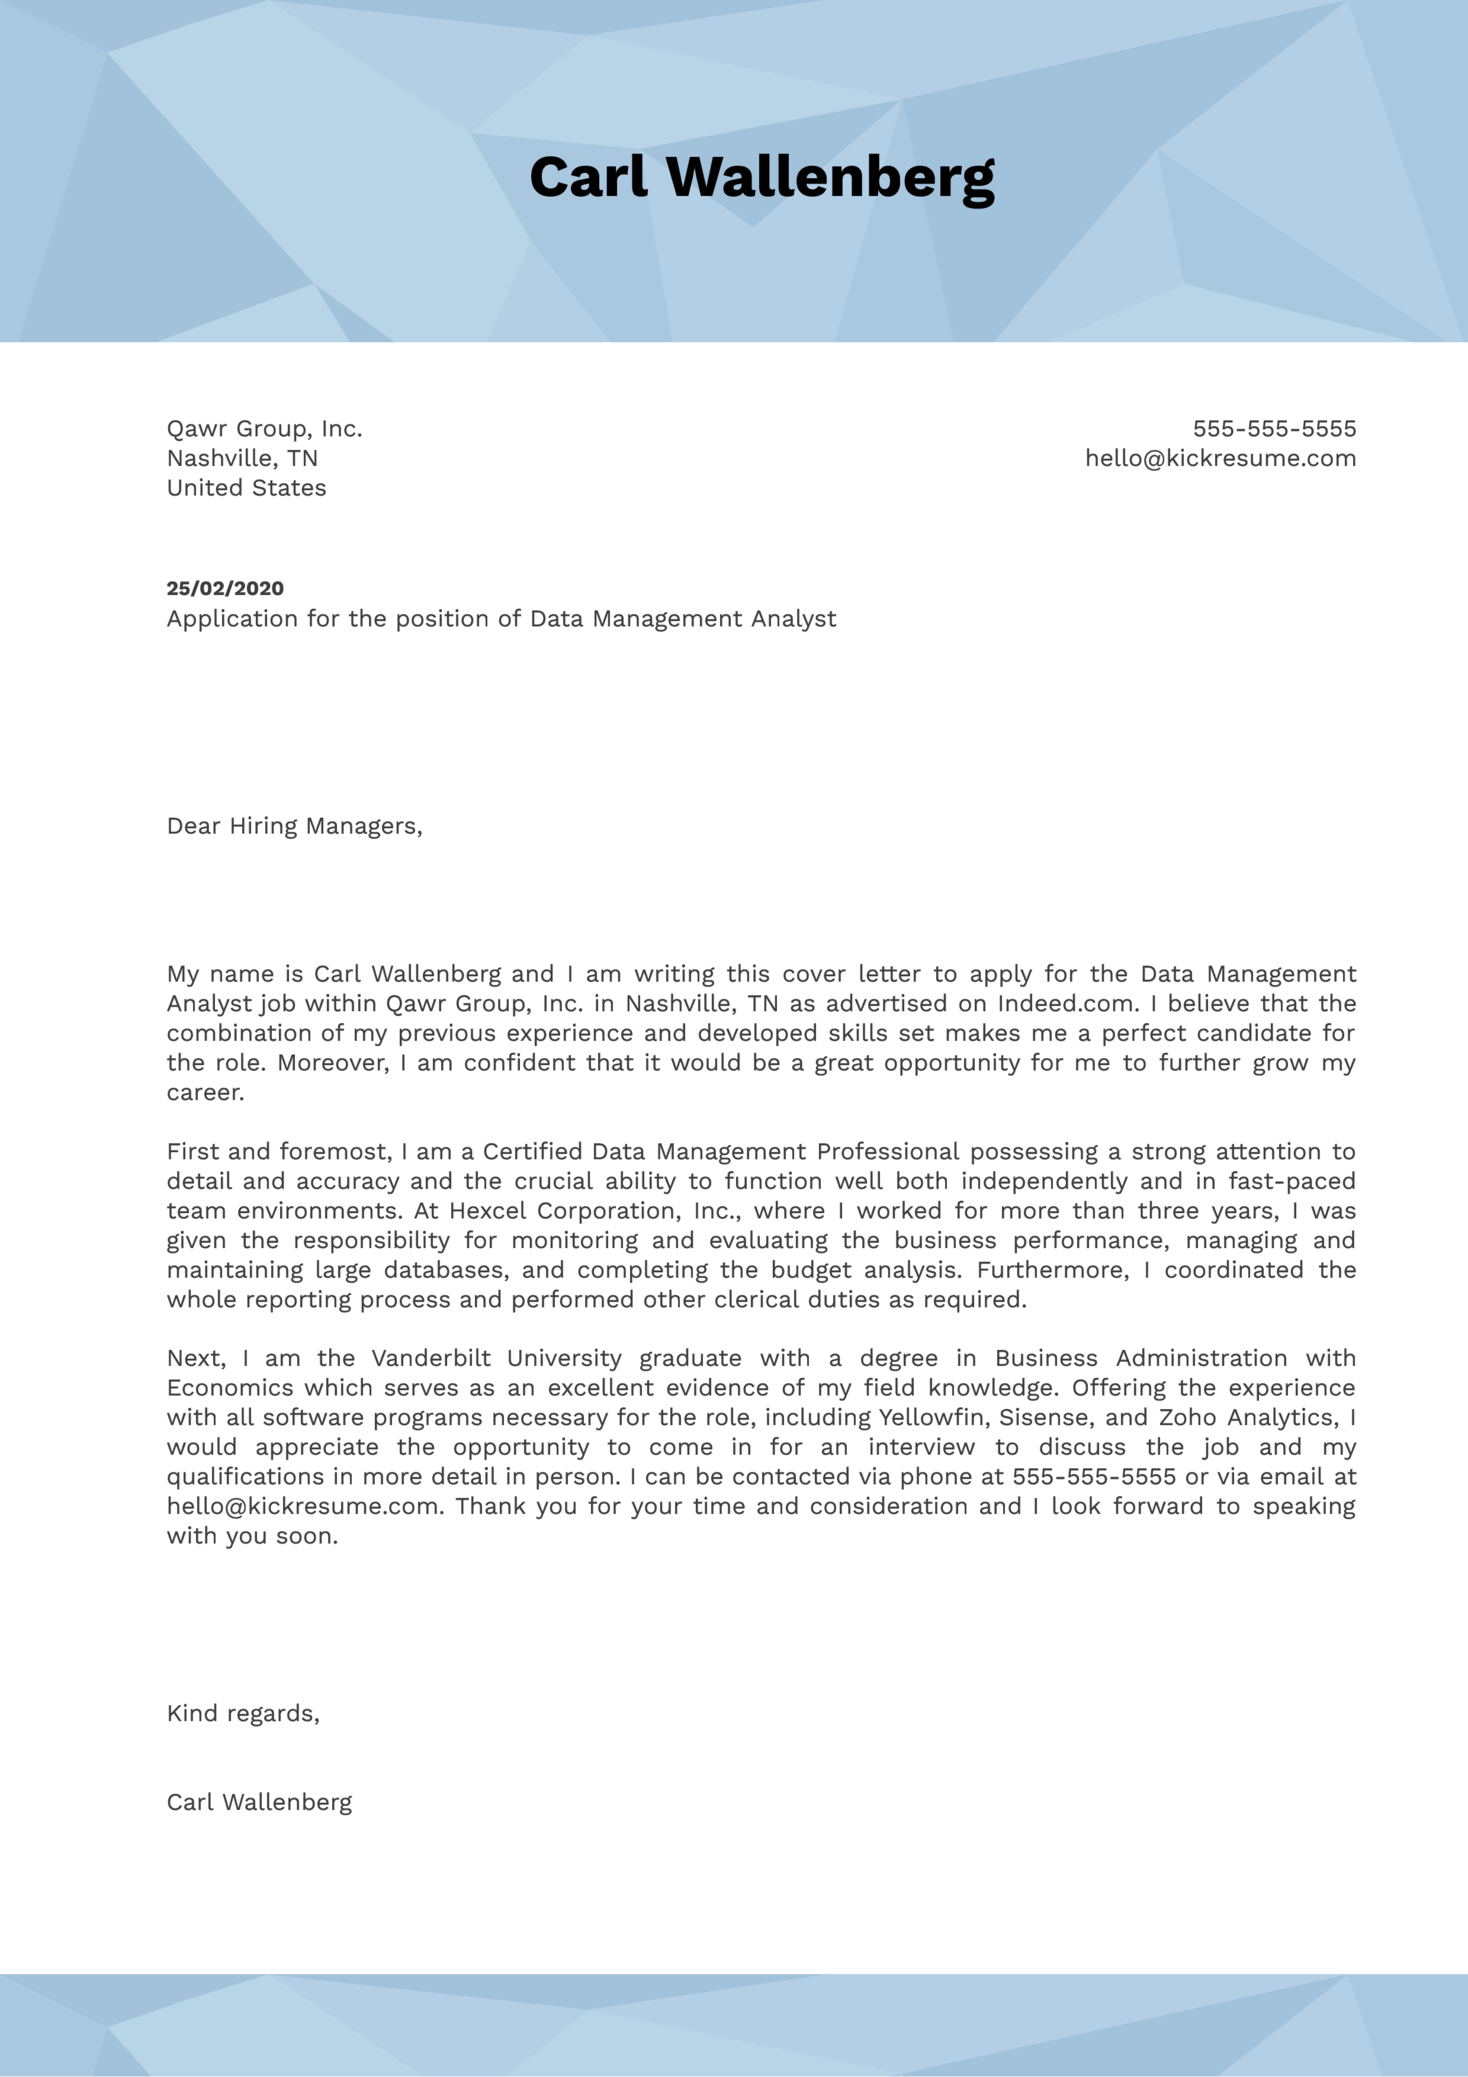 Data Management Analyst Cover Letter Example